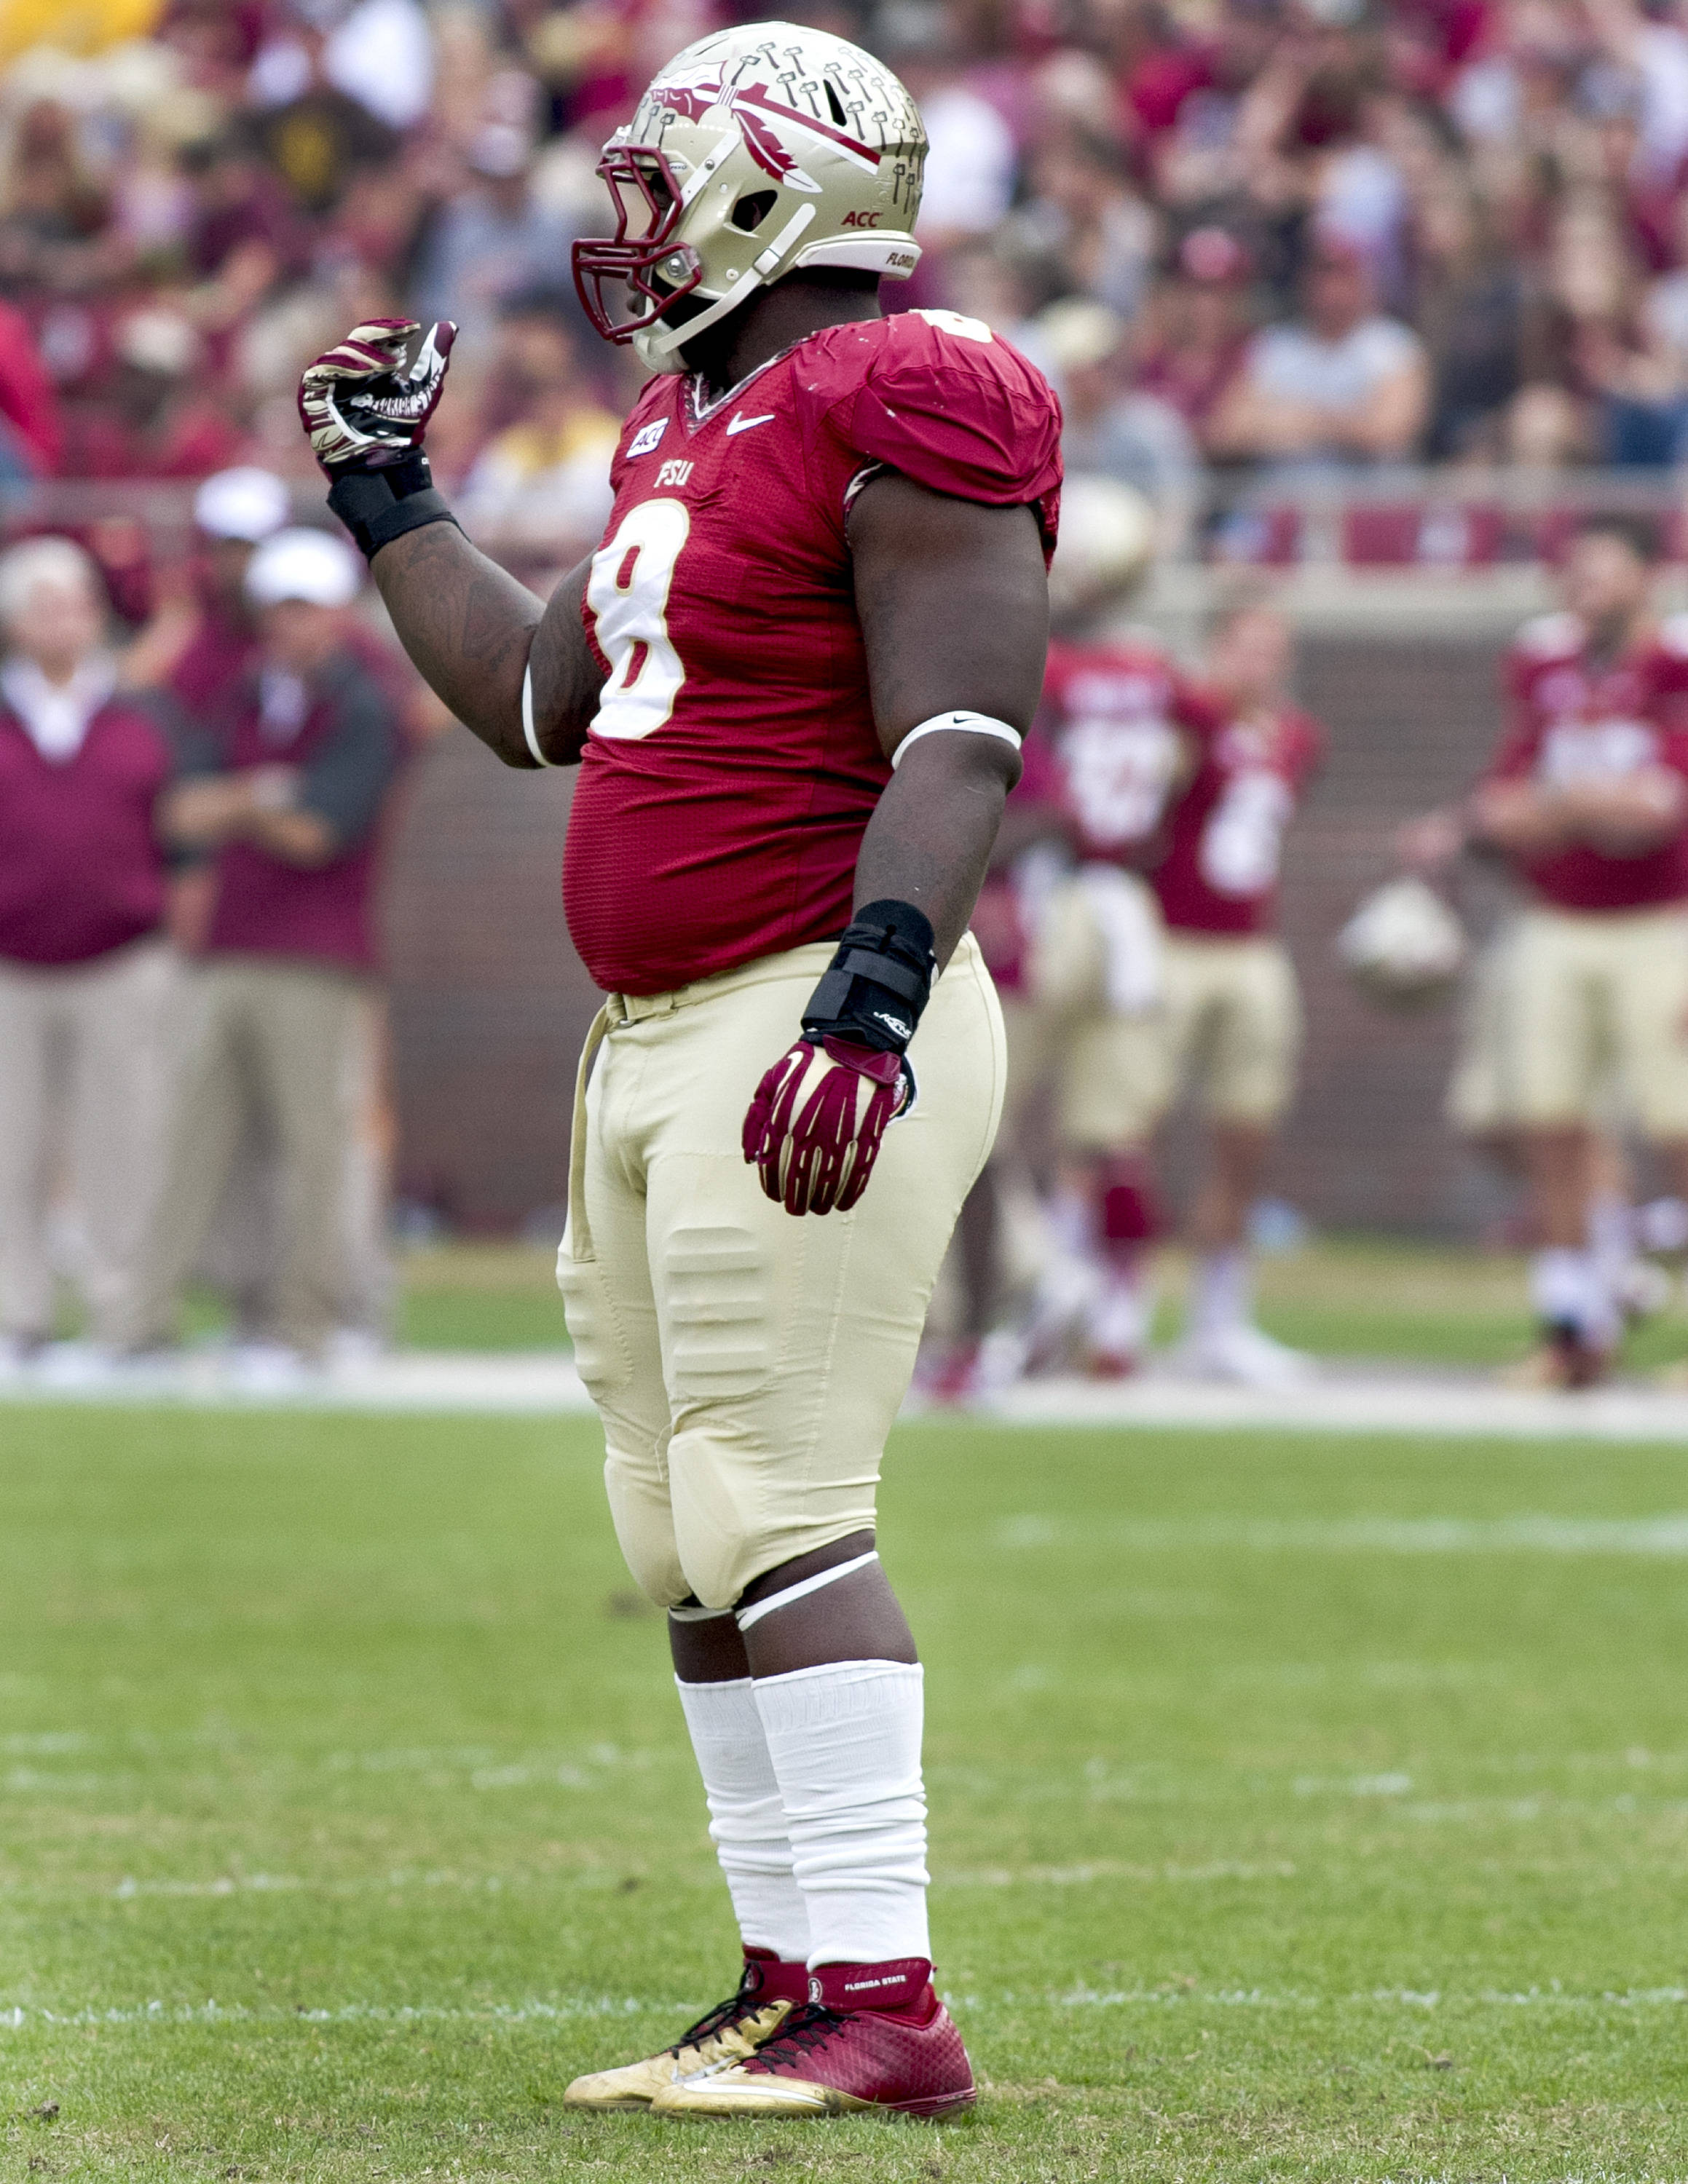 Timmy Jernigan (8) calling Idaho's offense back due to a penalty, FSU vs Idaho, 11-23-13,  (Photo by Steve Musco)